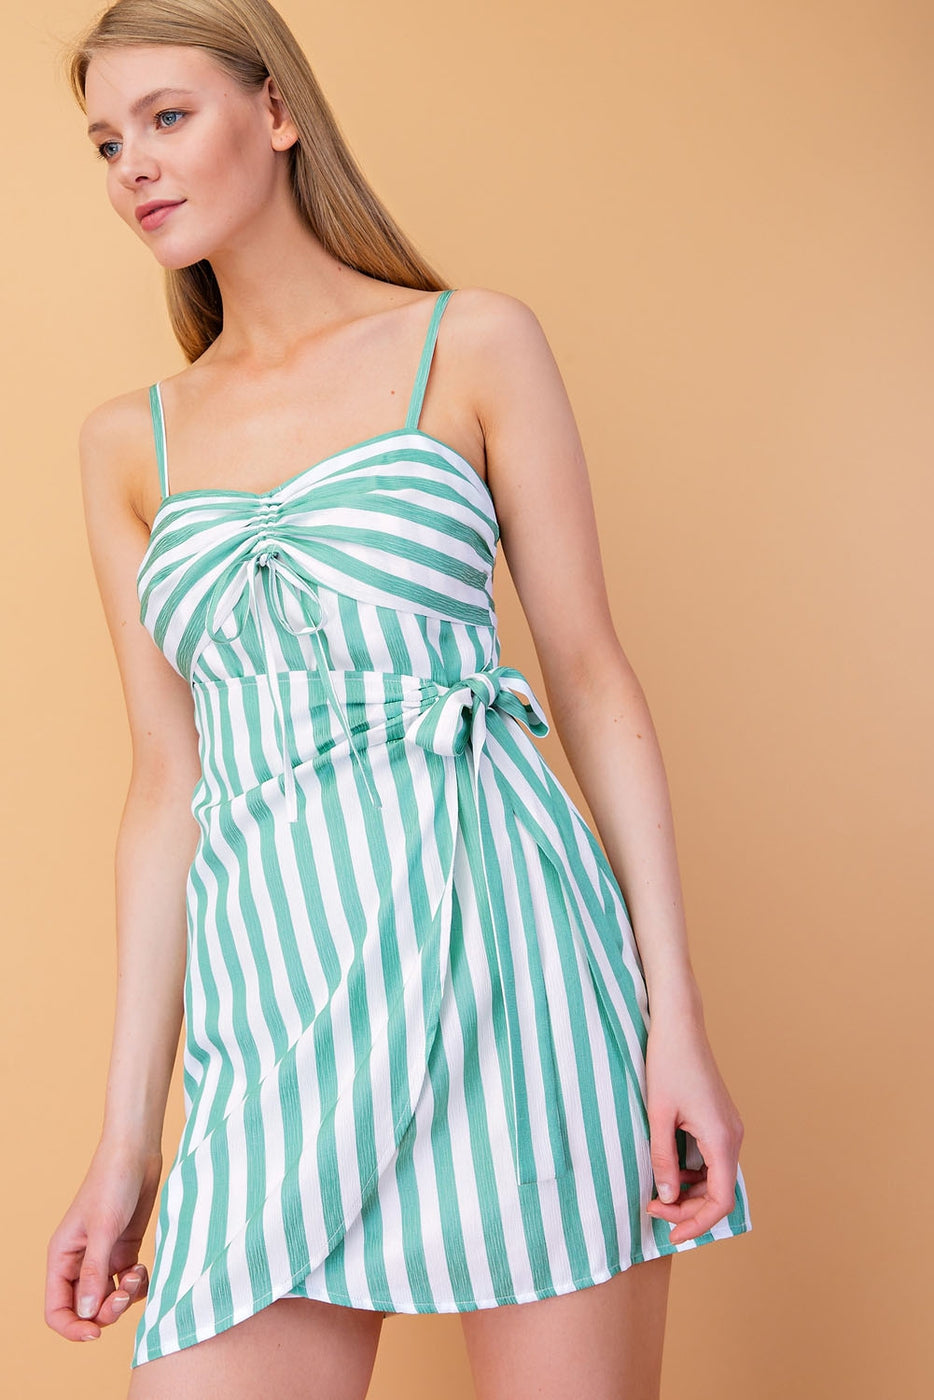 Spaghetti Strap Striped Mini Dress With Wrap Detail In Green Siin Bees